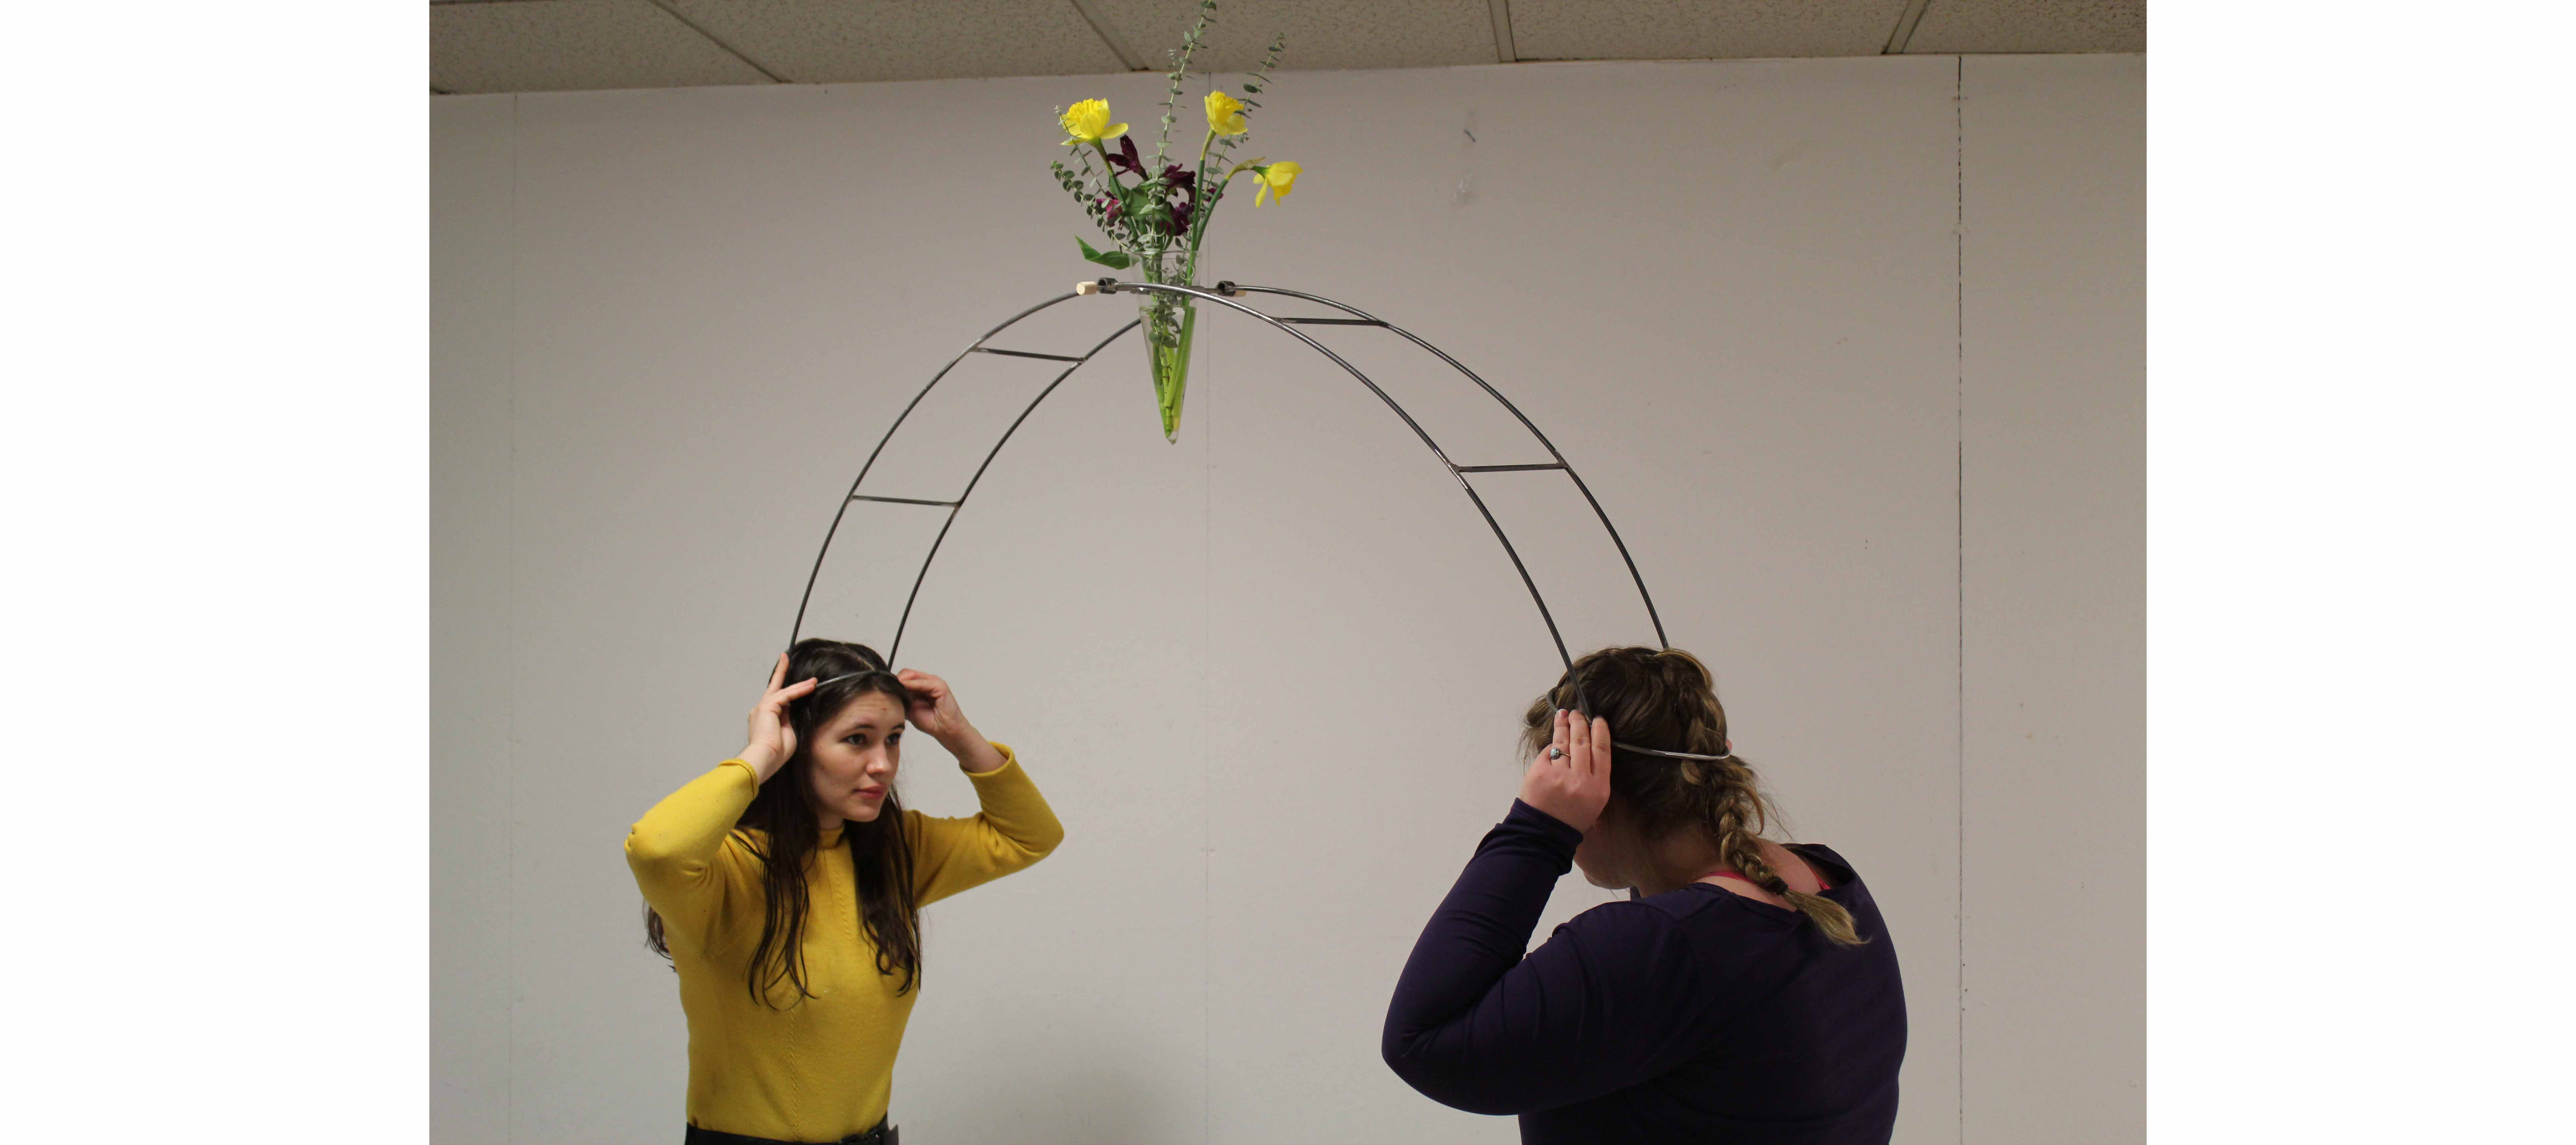 Jenna Lenz and Laeticia Mabilais Estevez with steel fabrication project in Sculpture course